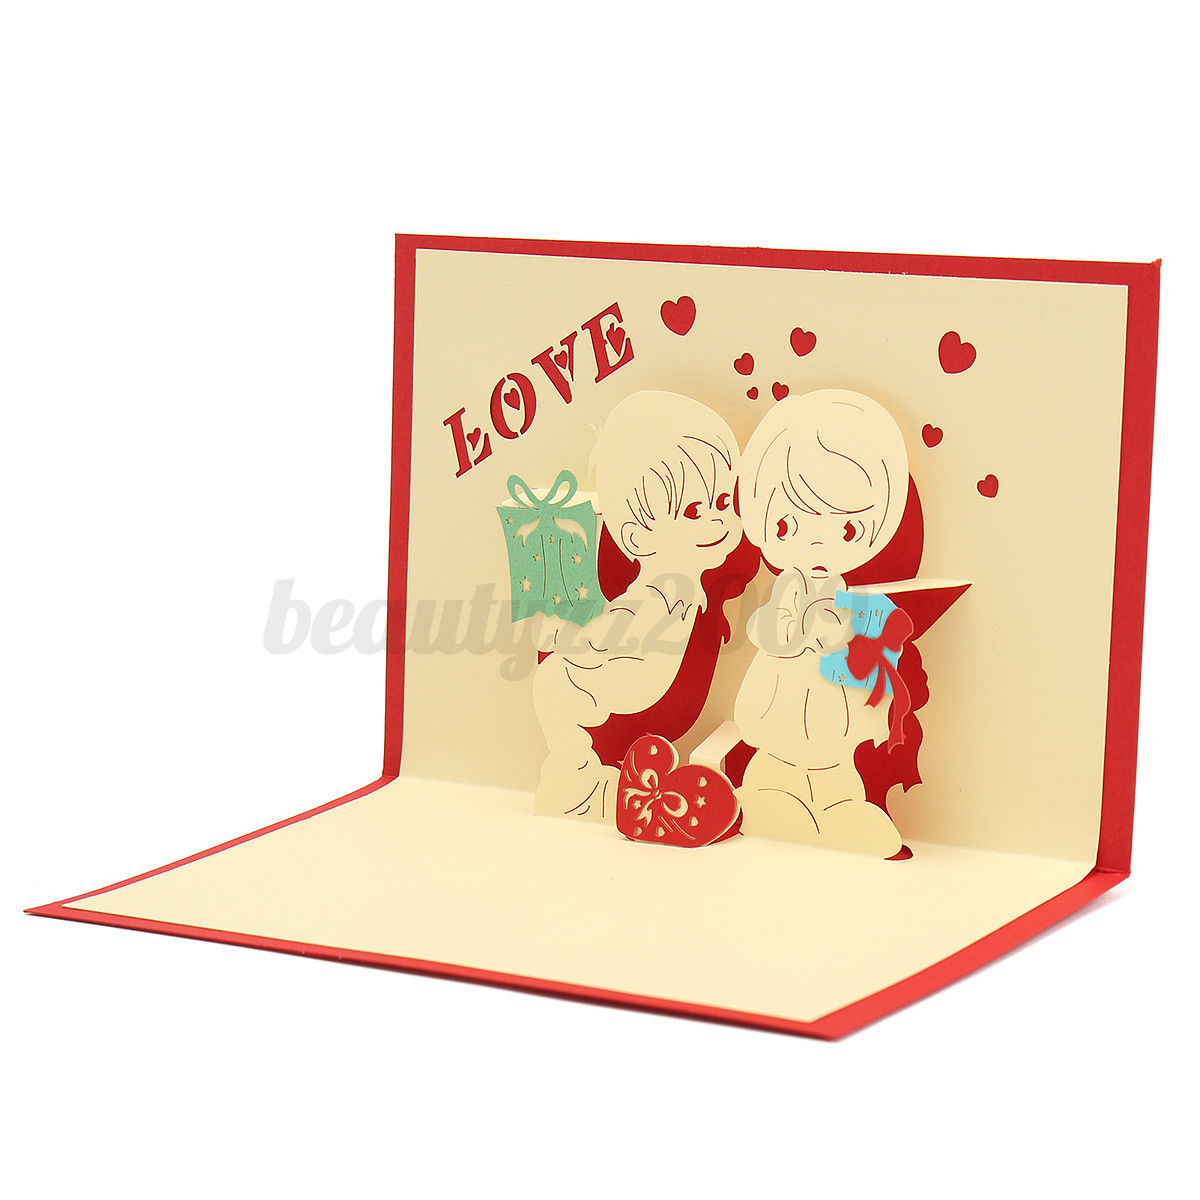 pop up birthday cards for mom - handmade 3d pop up greeting card birthday wedding